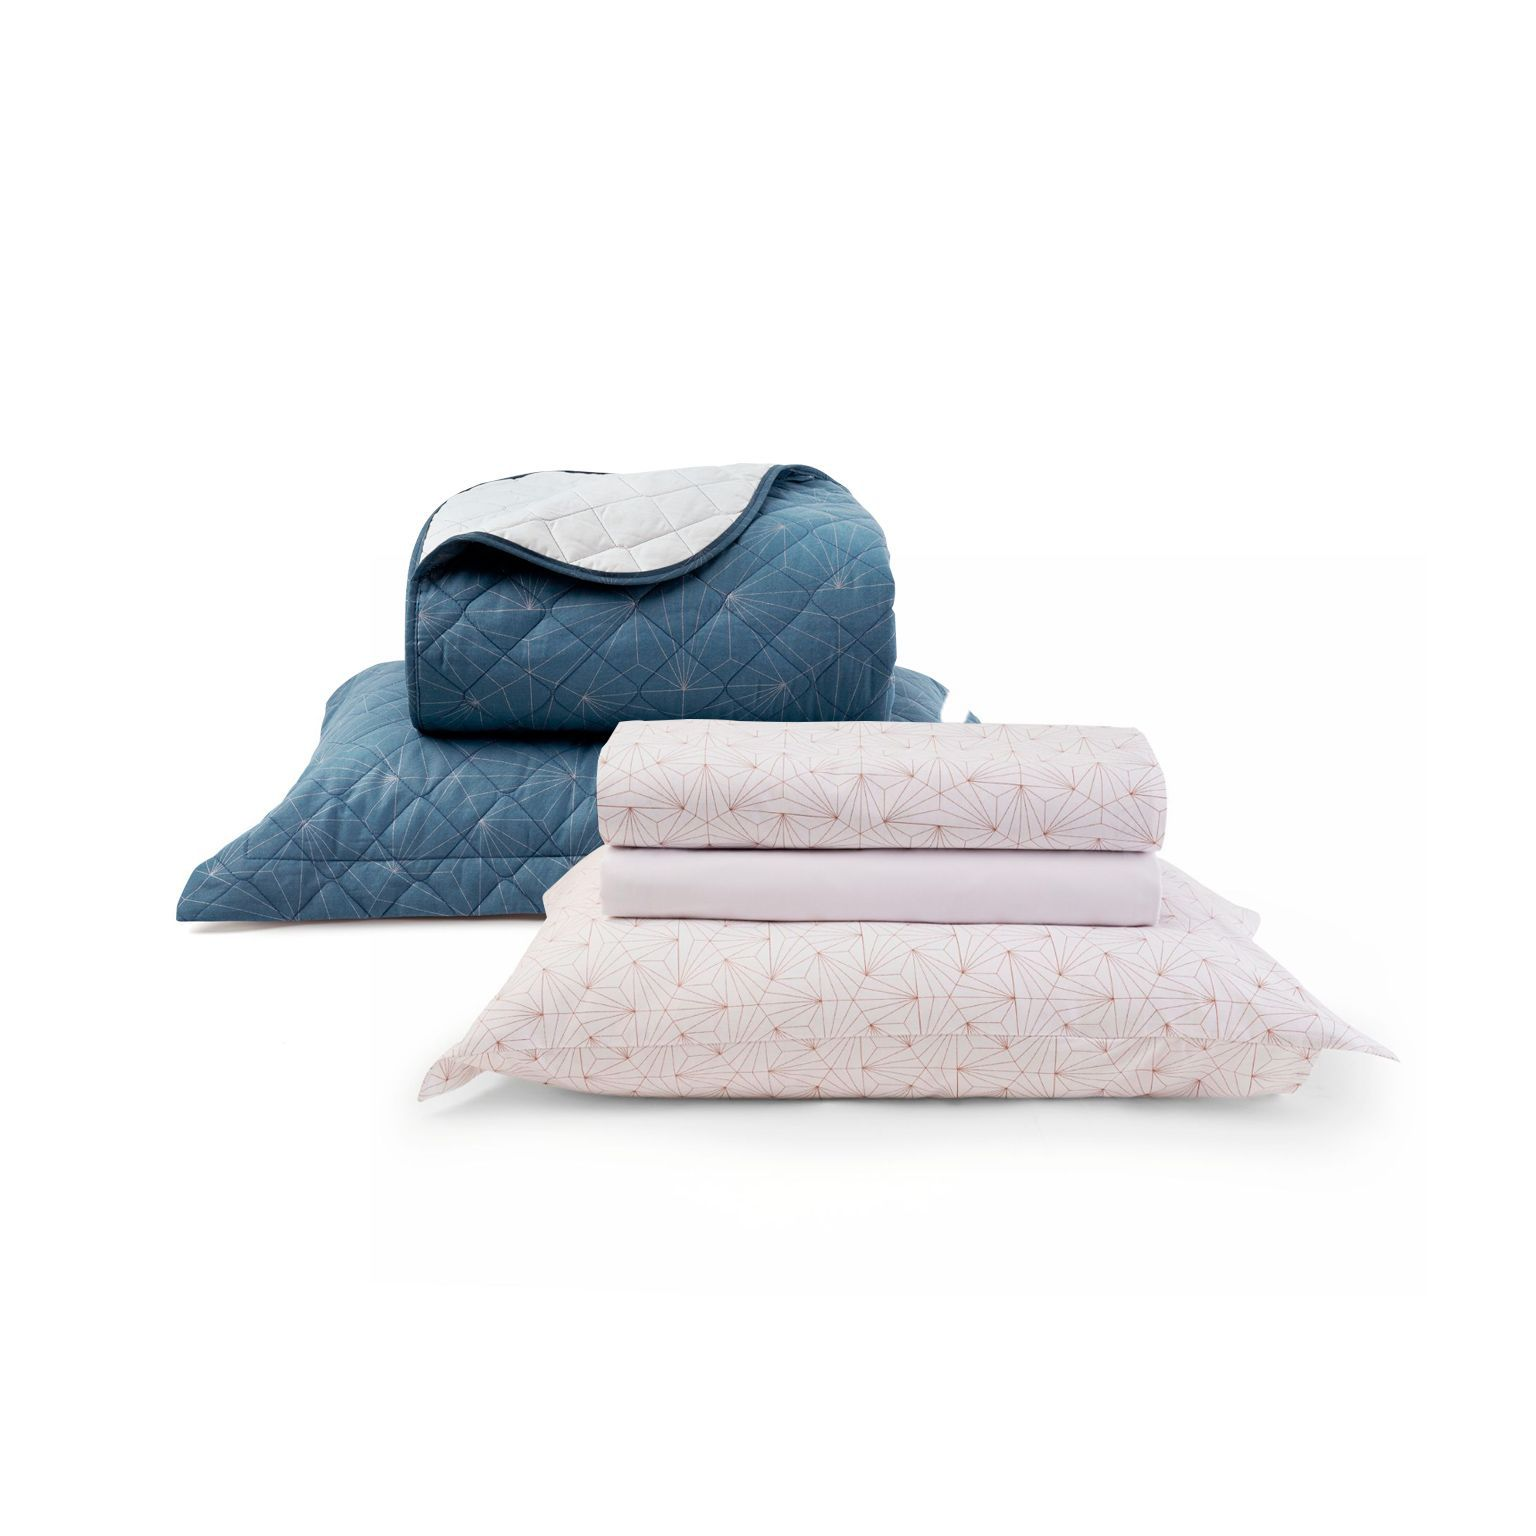 Kit Cama Matelassê Total Mix Astral Simples